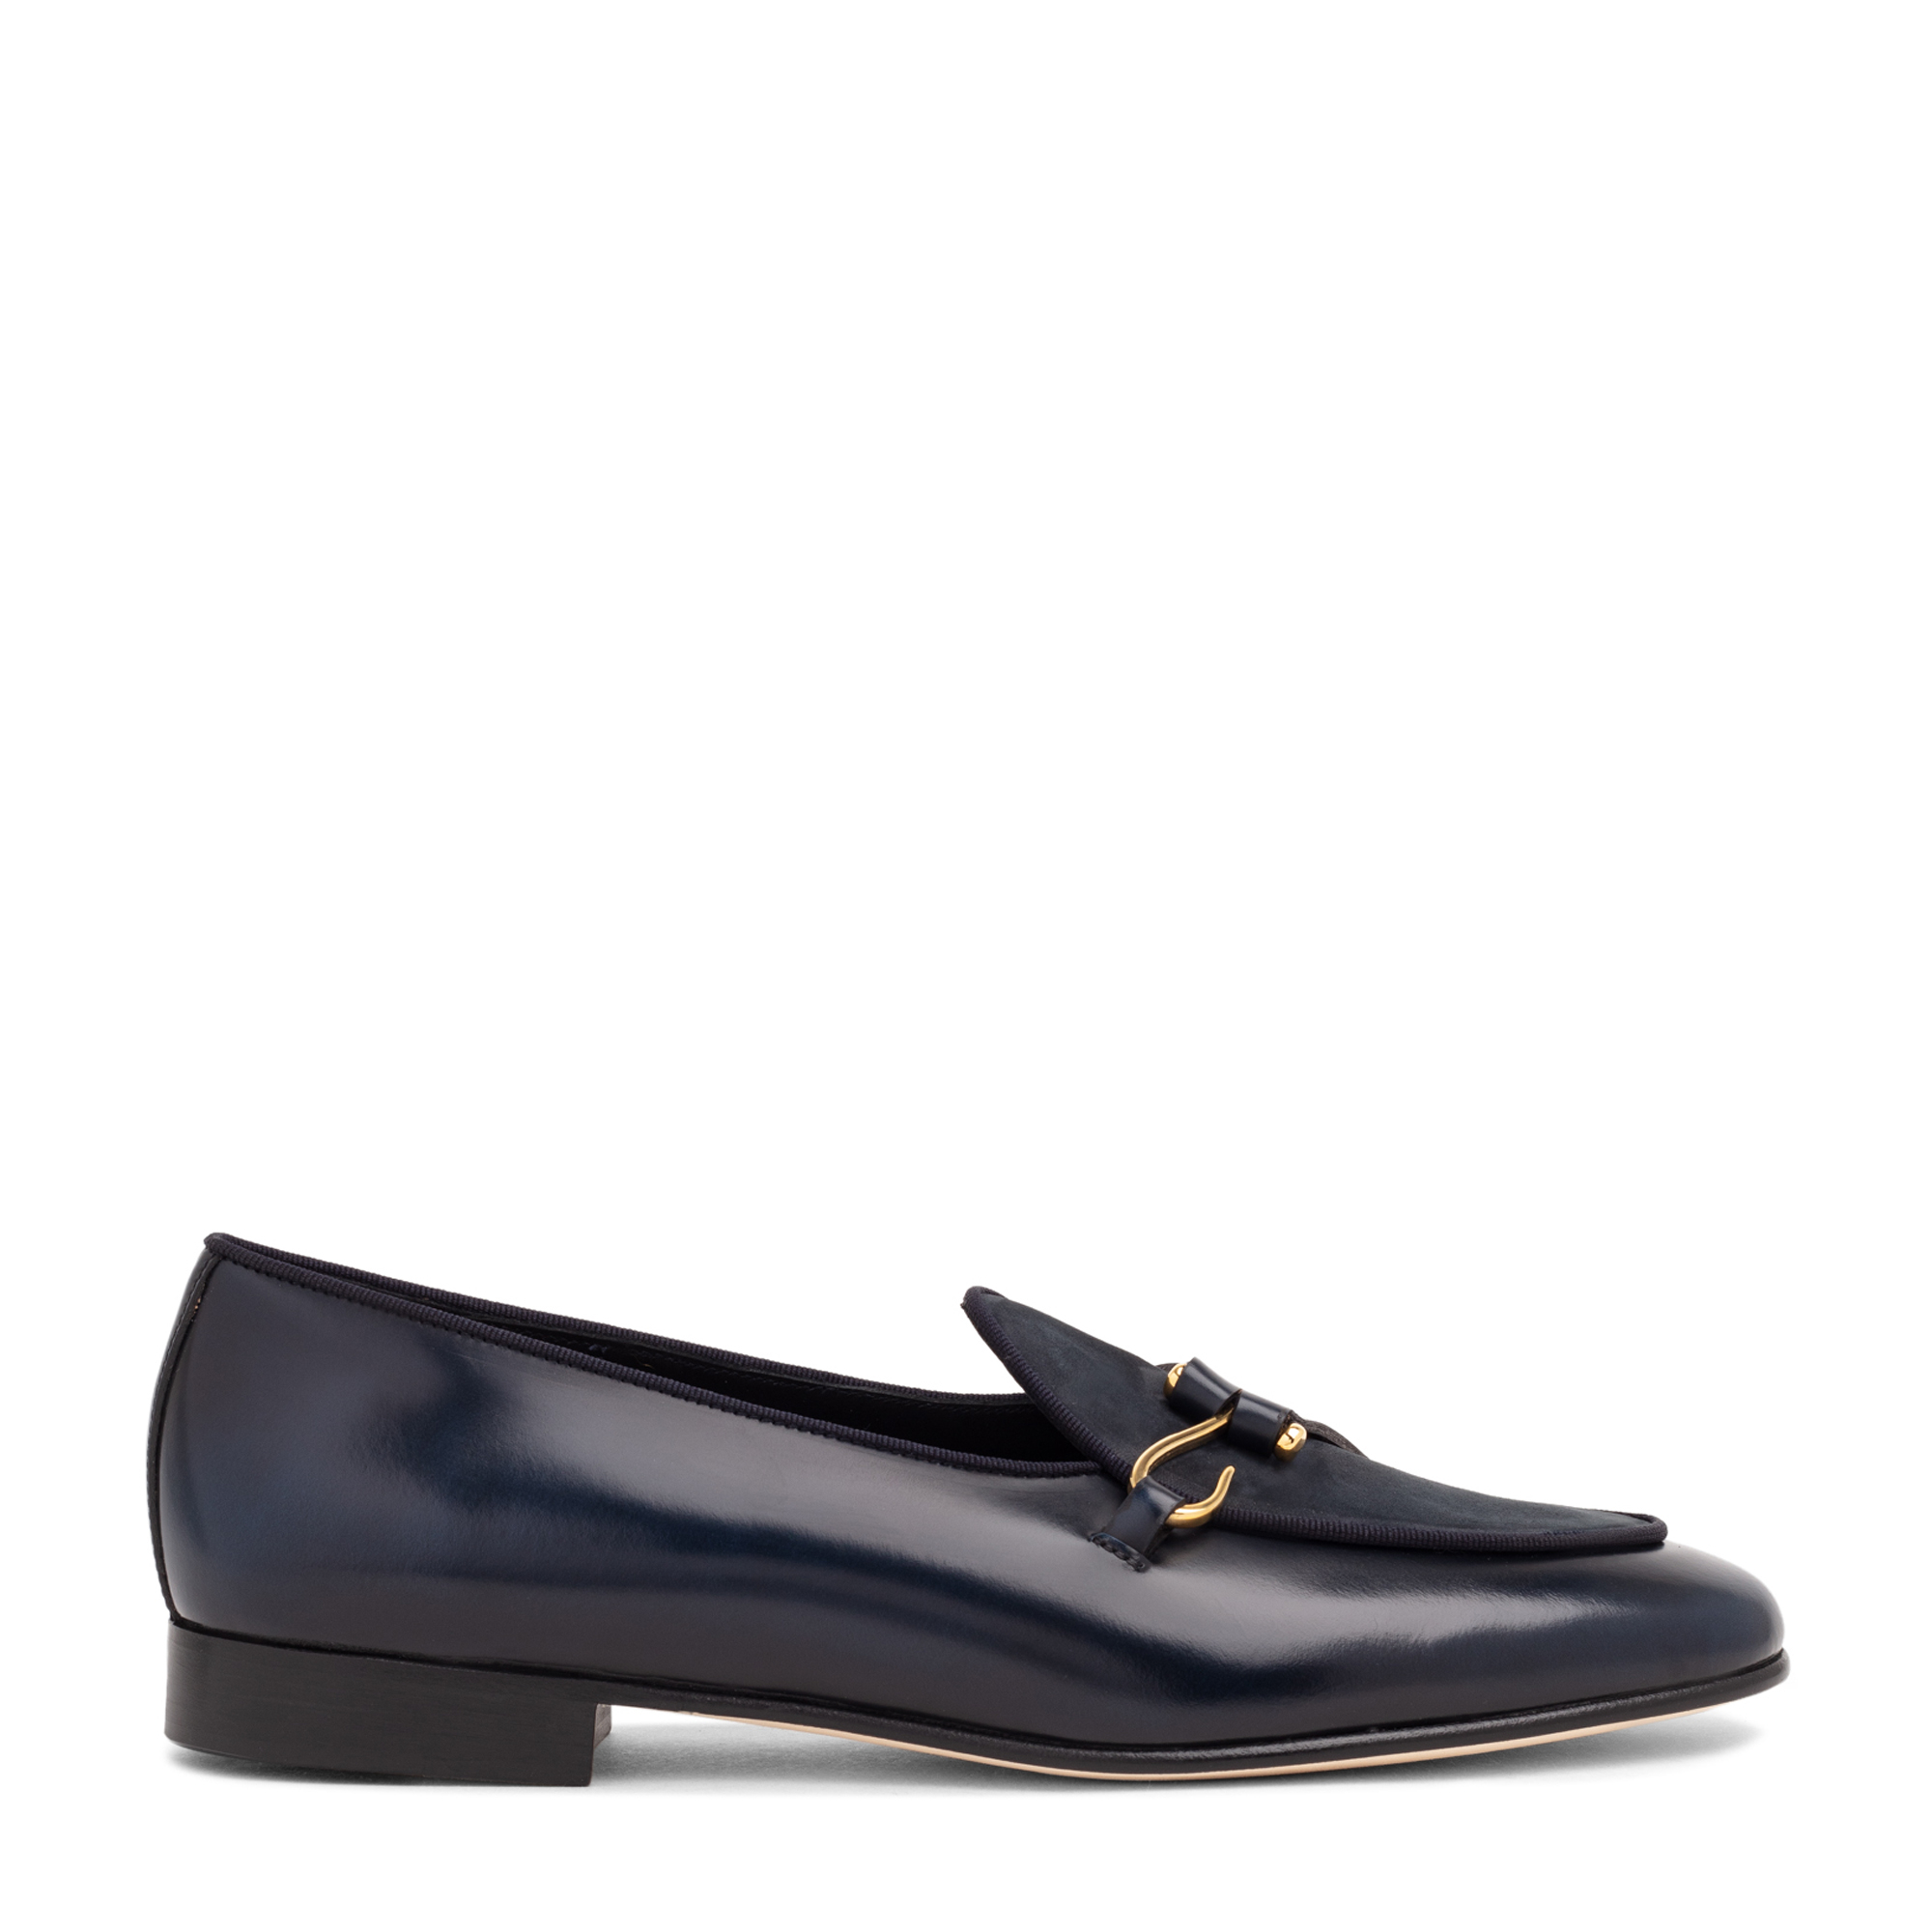 Comporta loafers